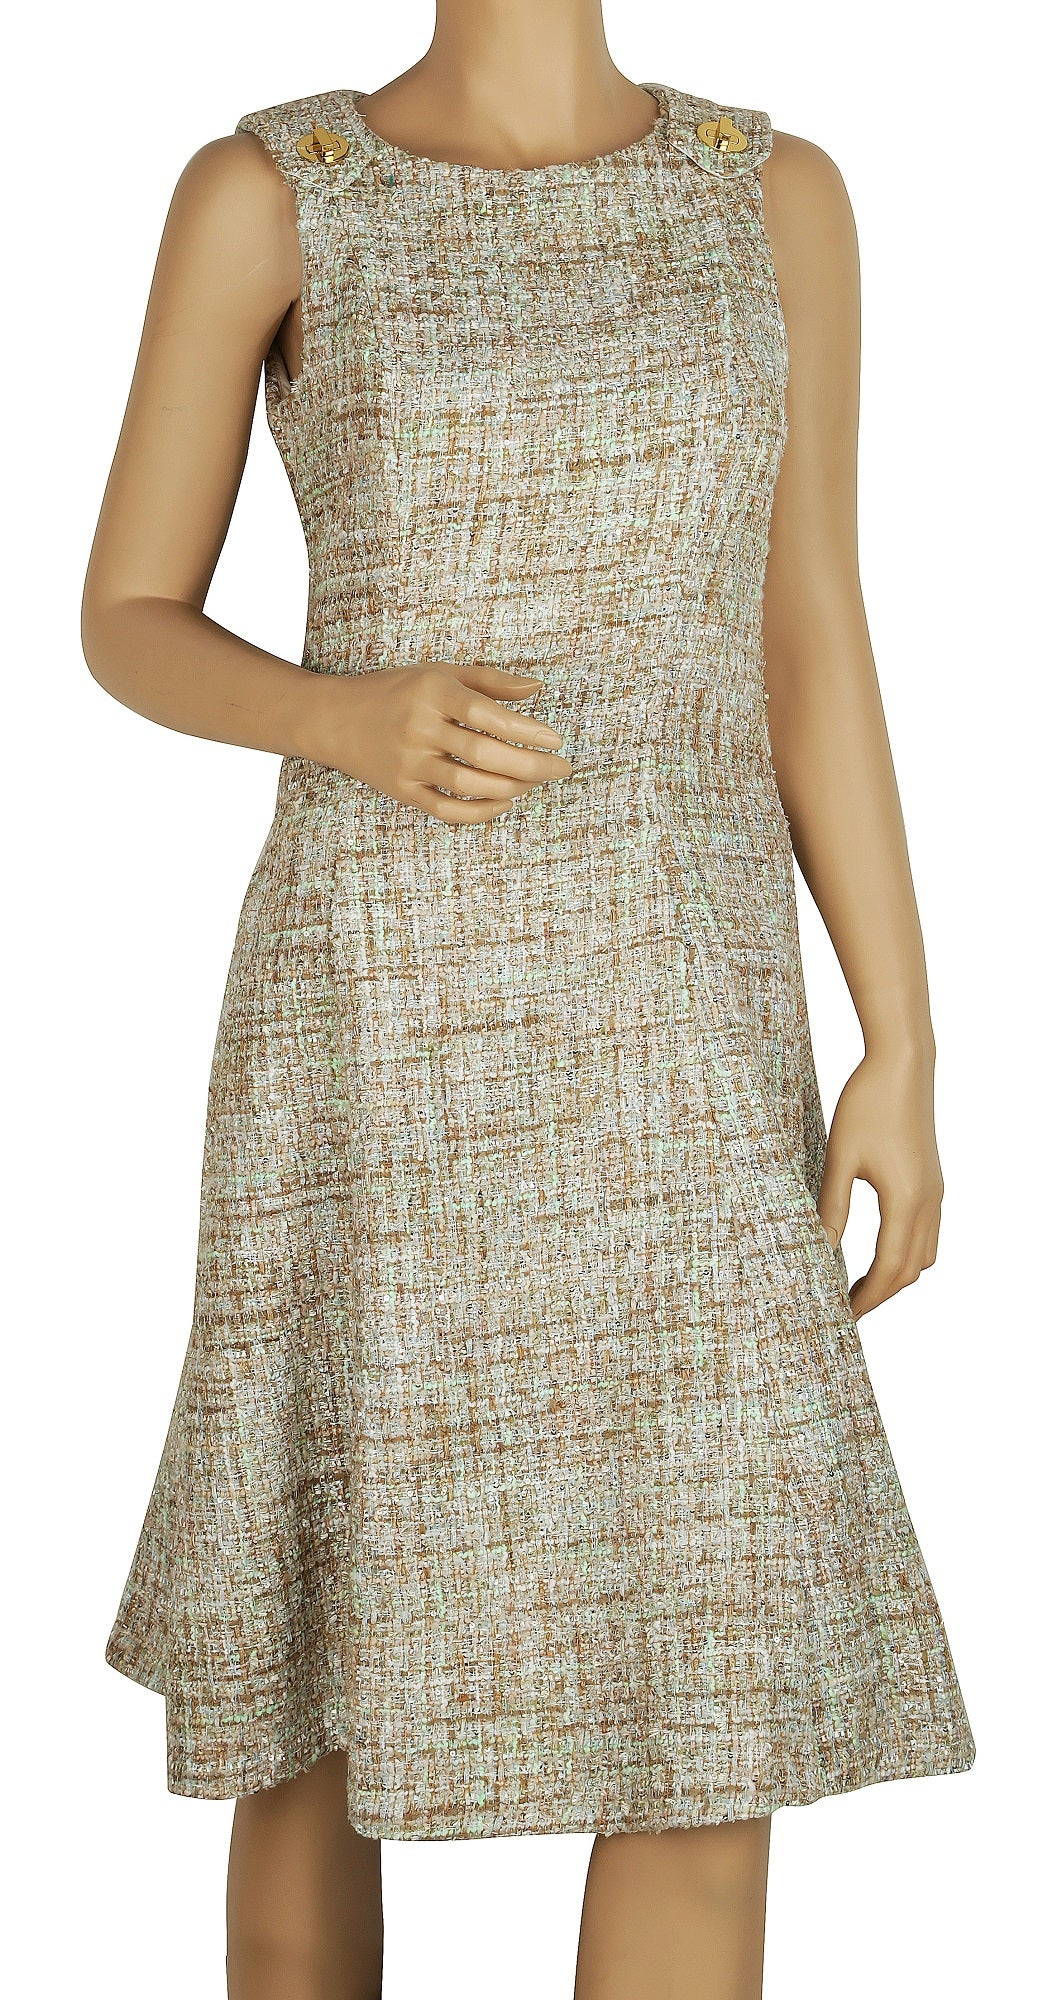 Badgley Mischka Mint Tweed Sleeveless Dress